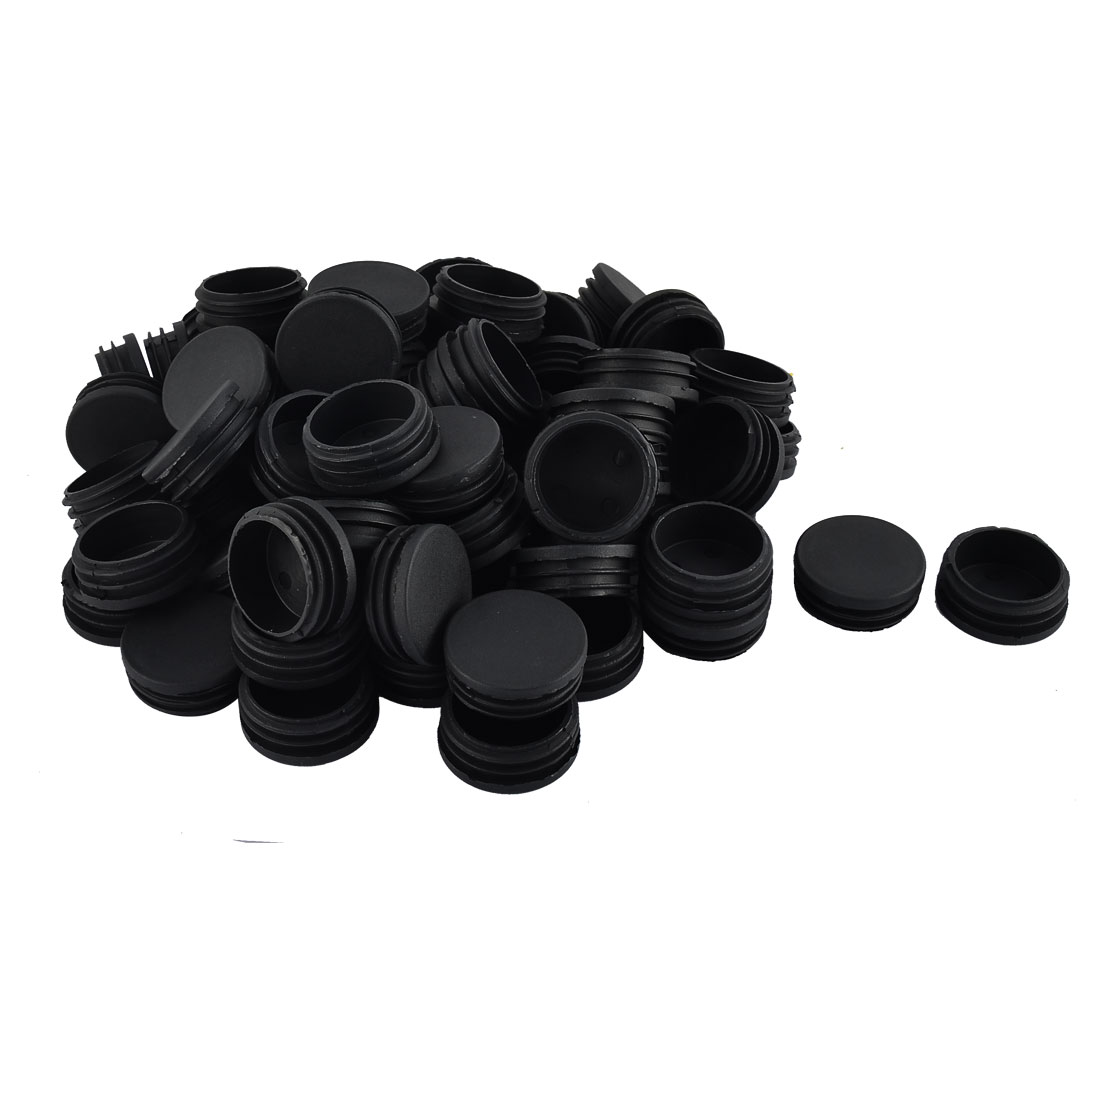 Furniture Table Legs Plastic Round Tube Pipe Insert Cover Black 45mm Dia 70pcs